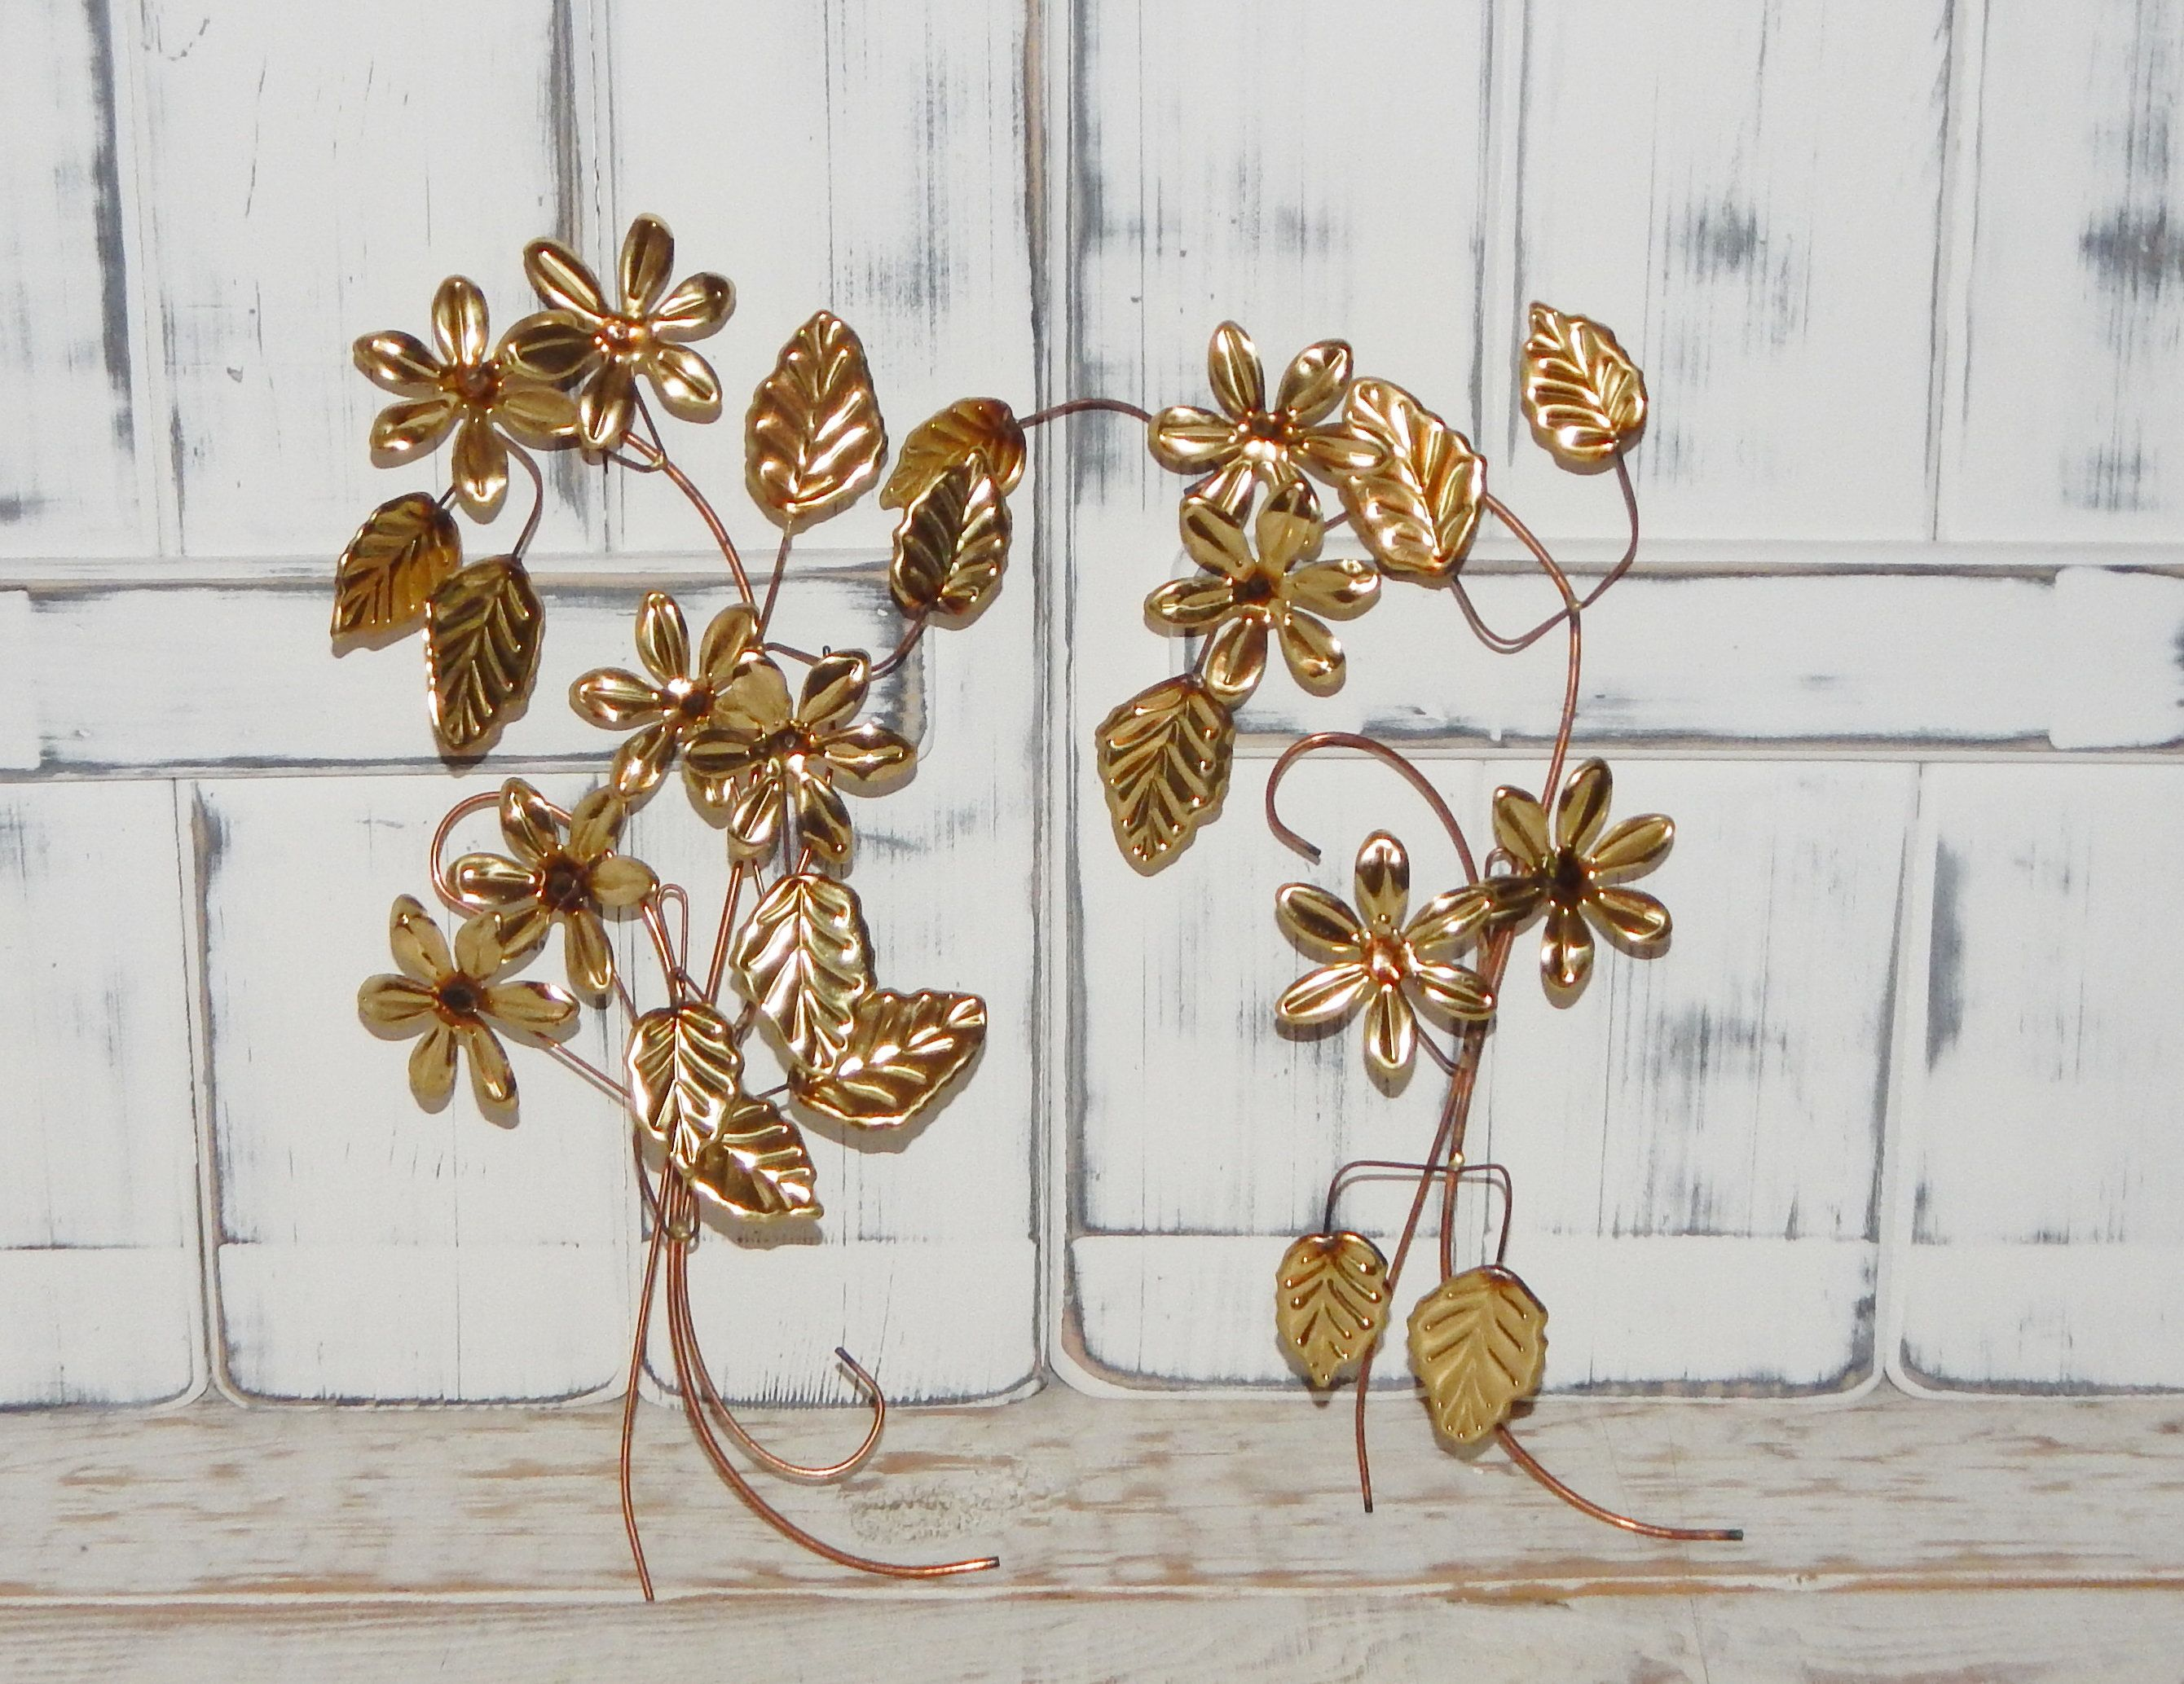 Metal Leaves Flowers Wall Decor Gold Tone Vintage Home Interiors